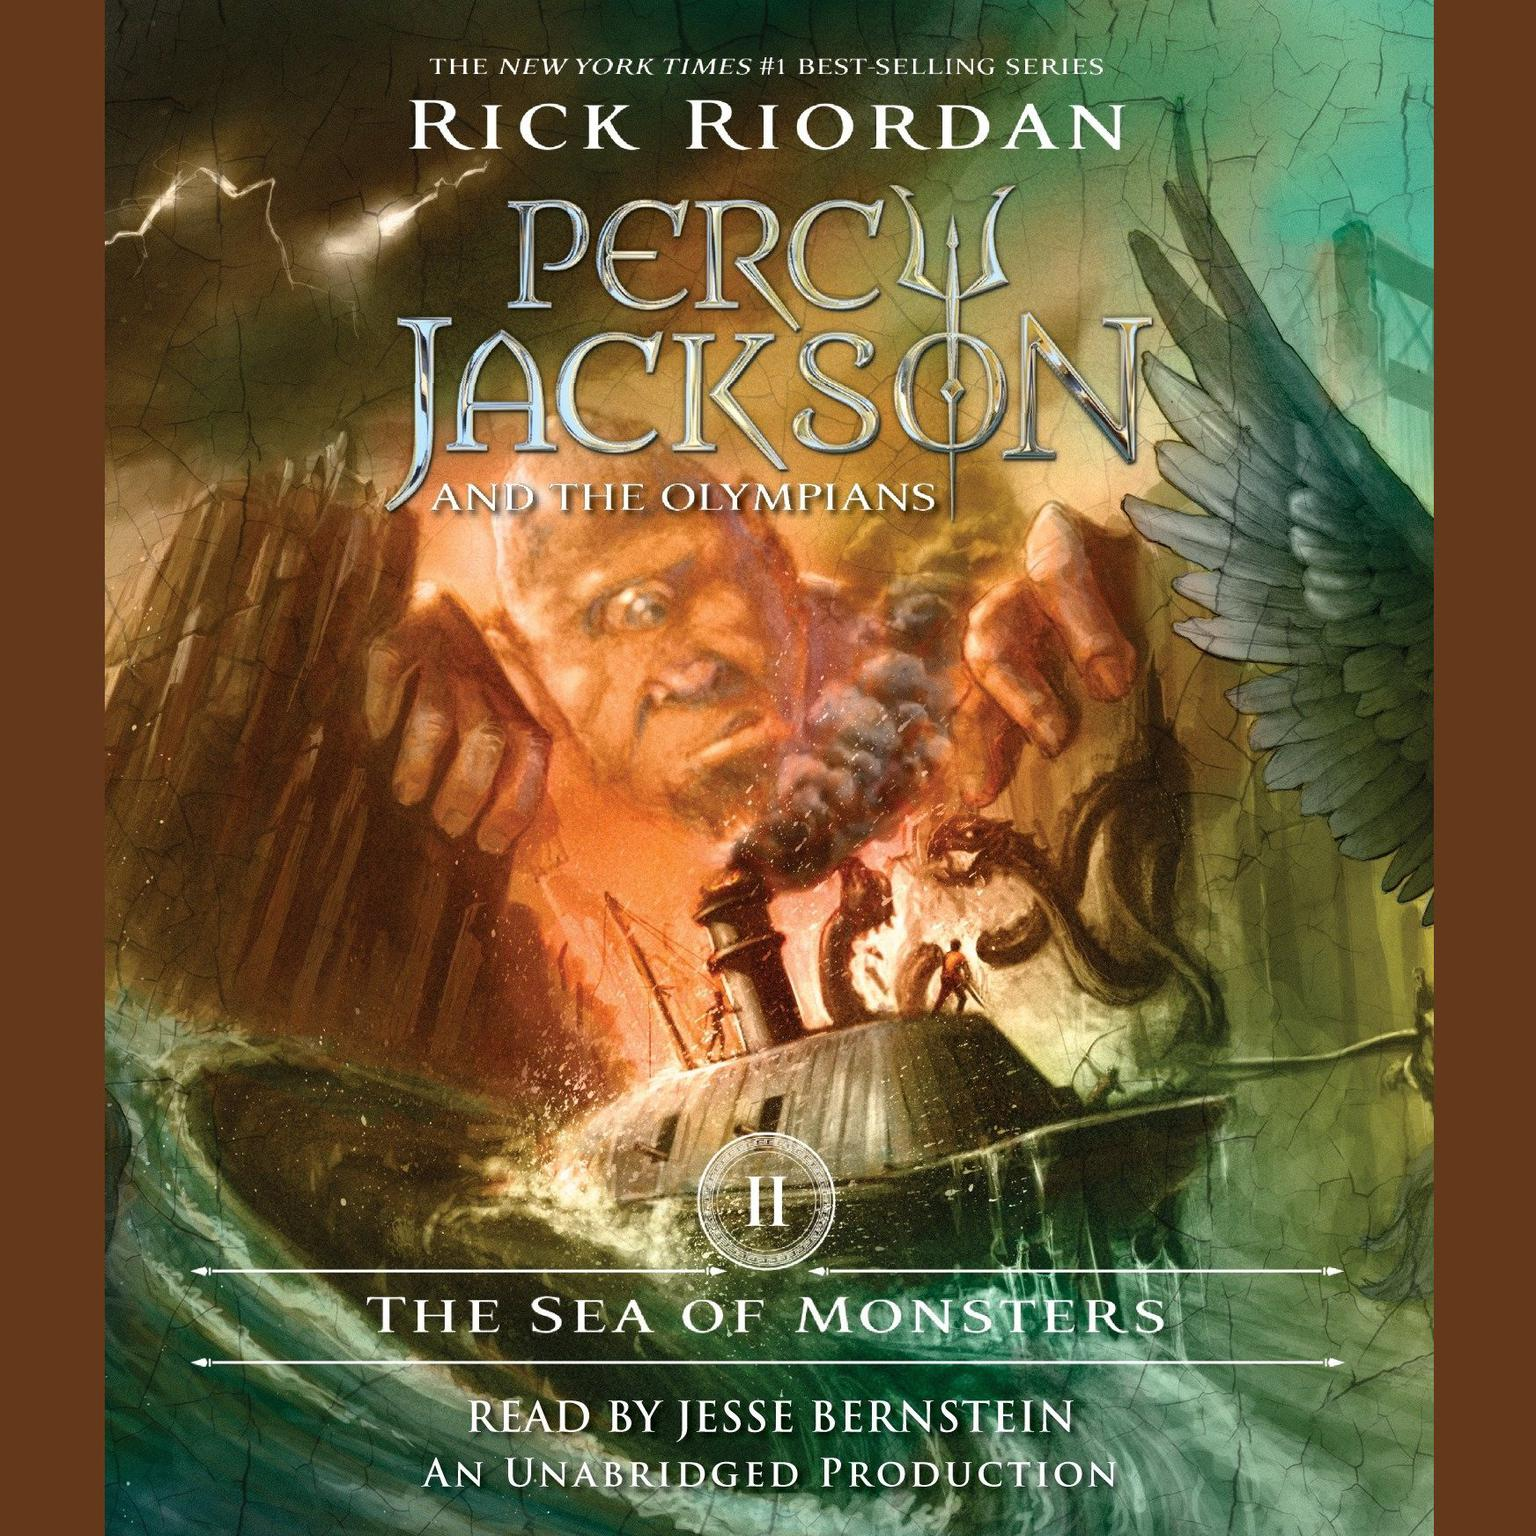 Download The Sea Of Monsters Audiobook By Rick Riordan For